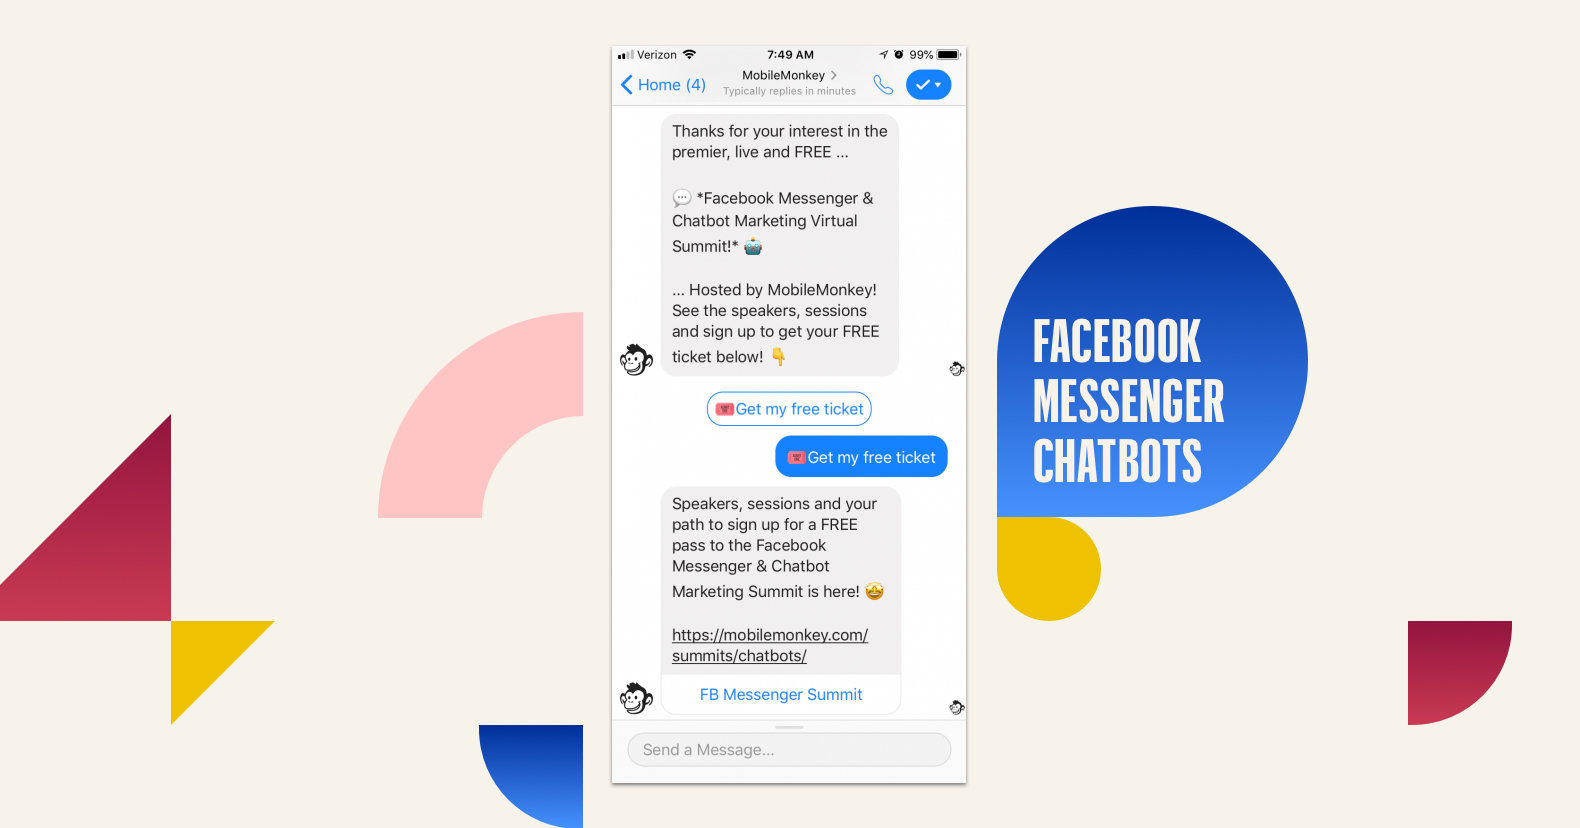 Mobile Monkey allows you to build marketing messenger chatbots without coding